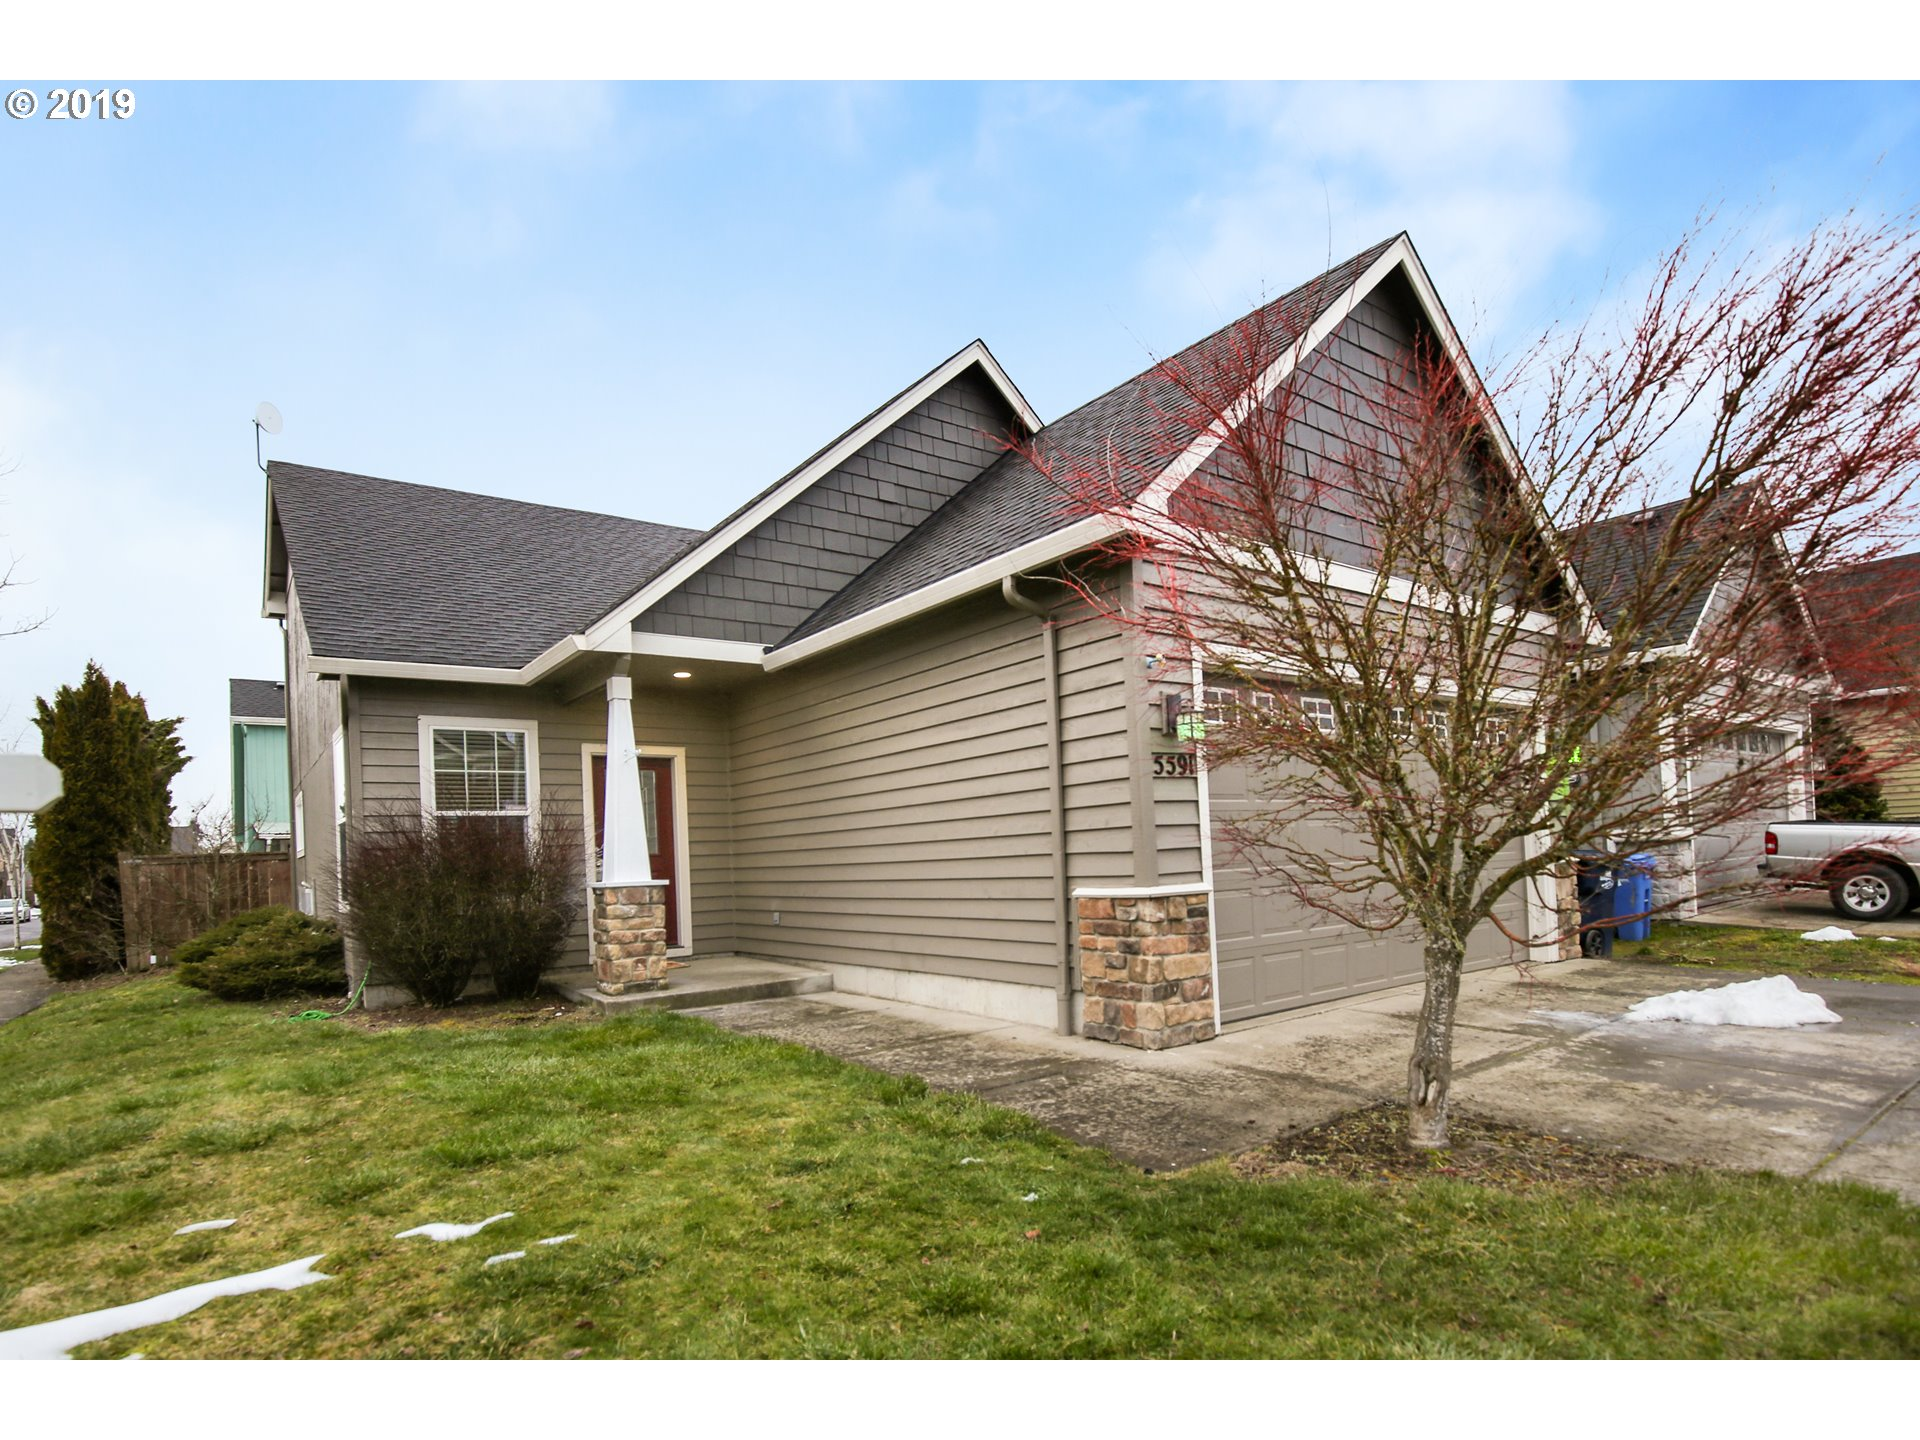 5591 KING ARTHUR CT, Eugene OR 97402